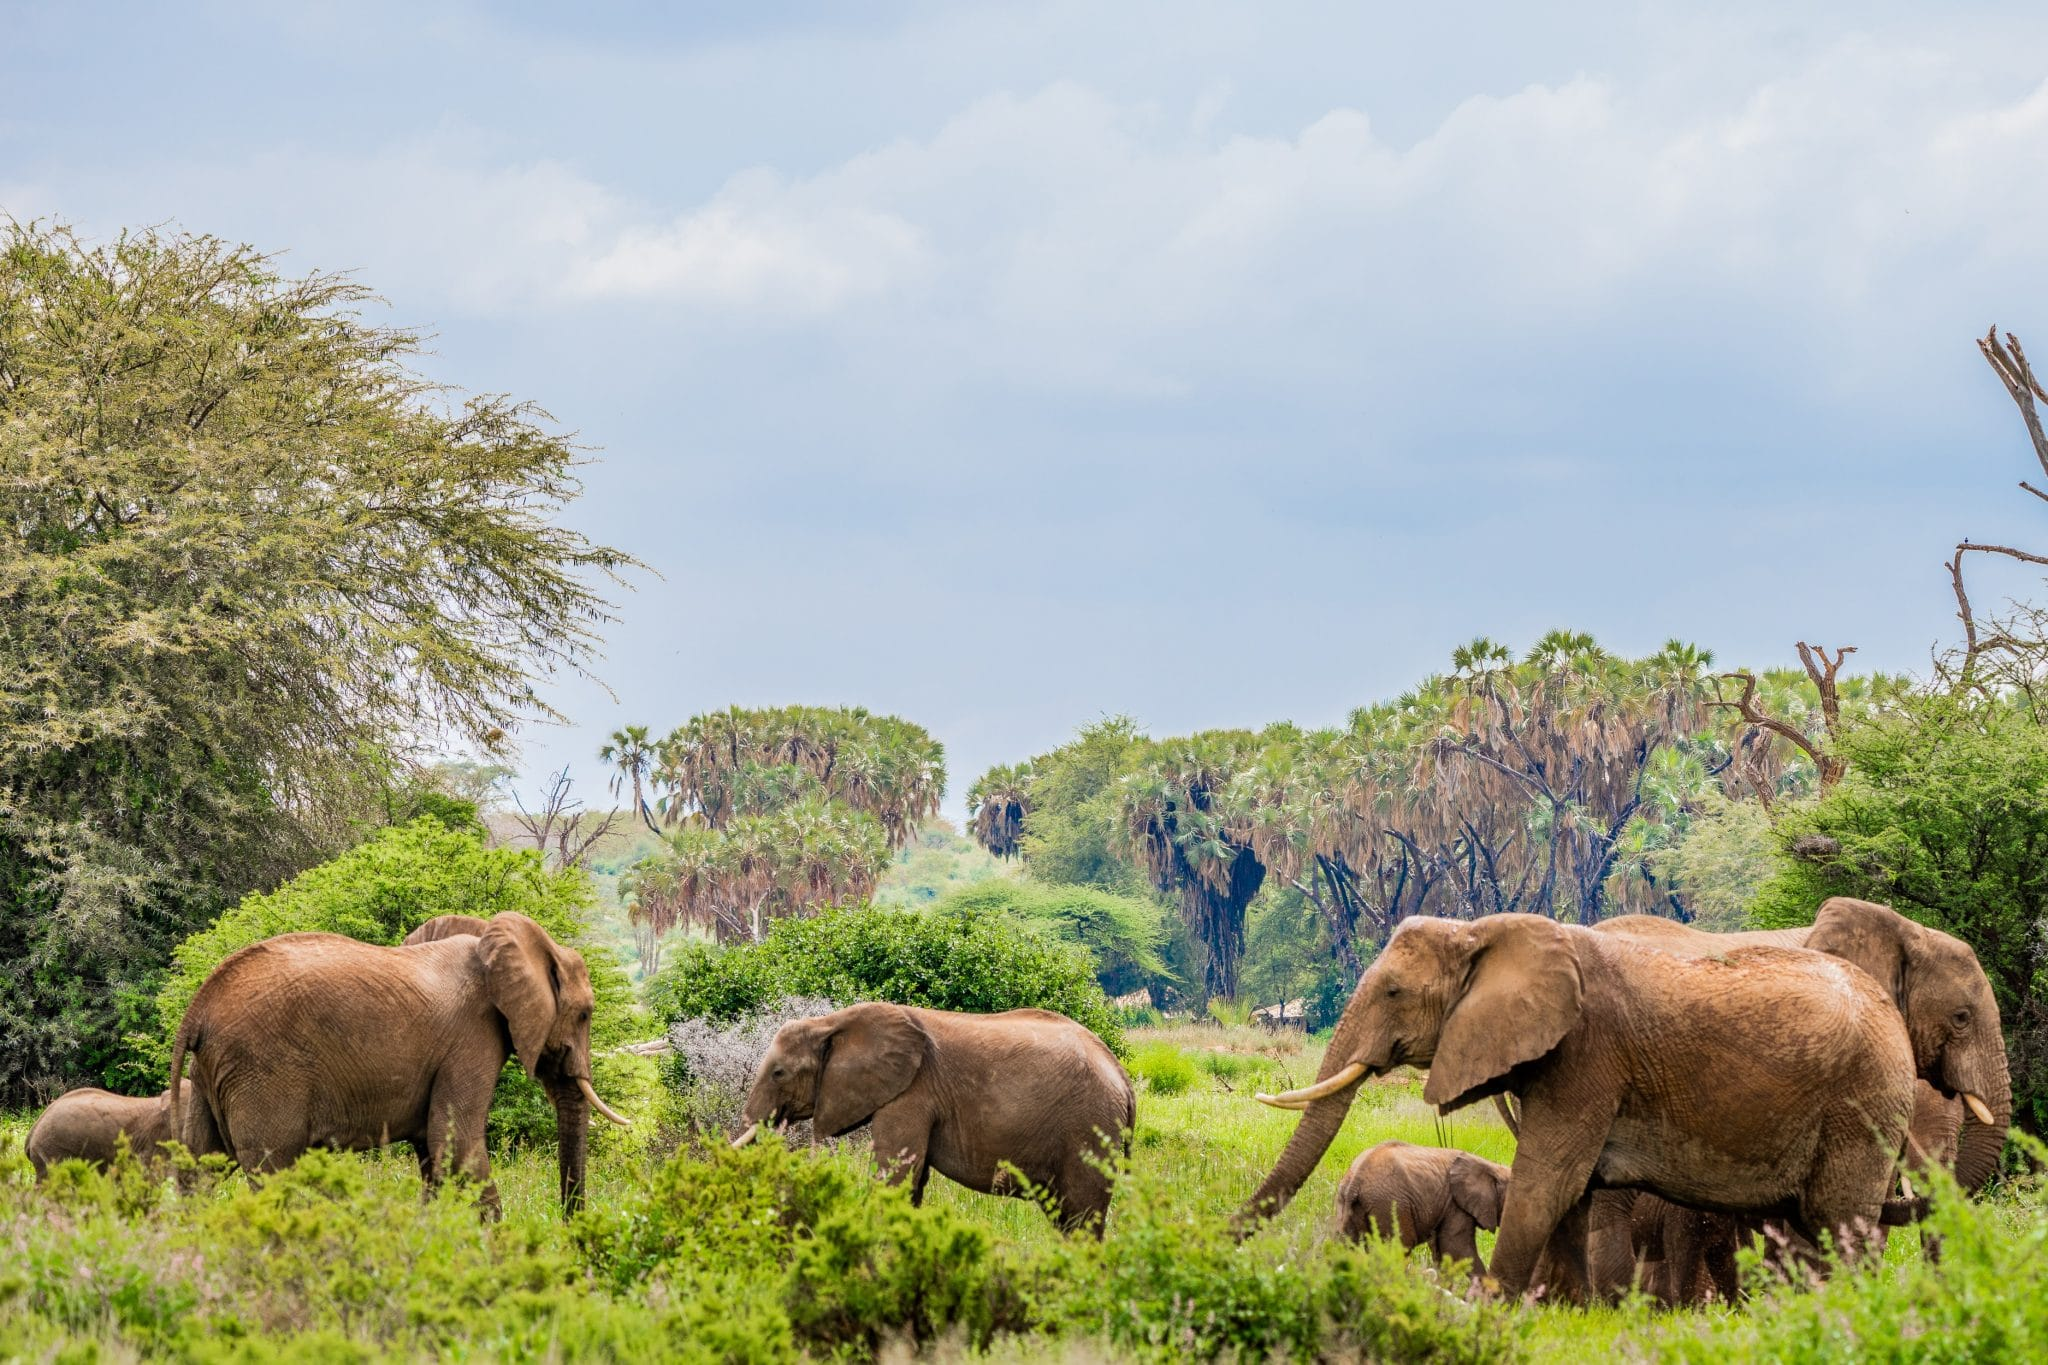 herd of elephants near trees